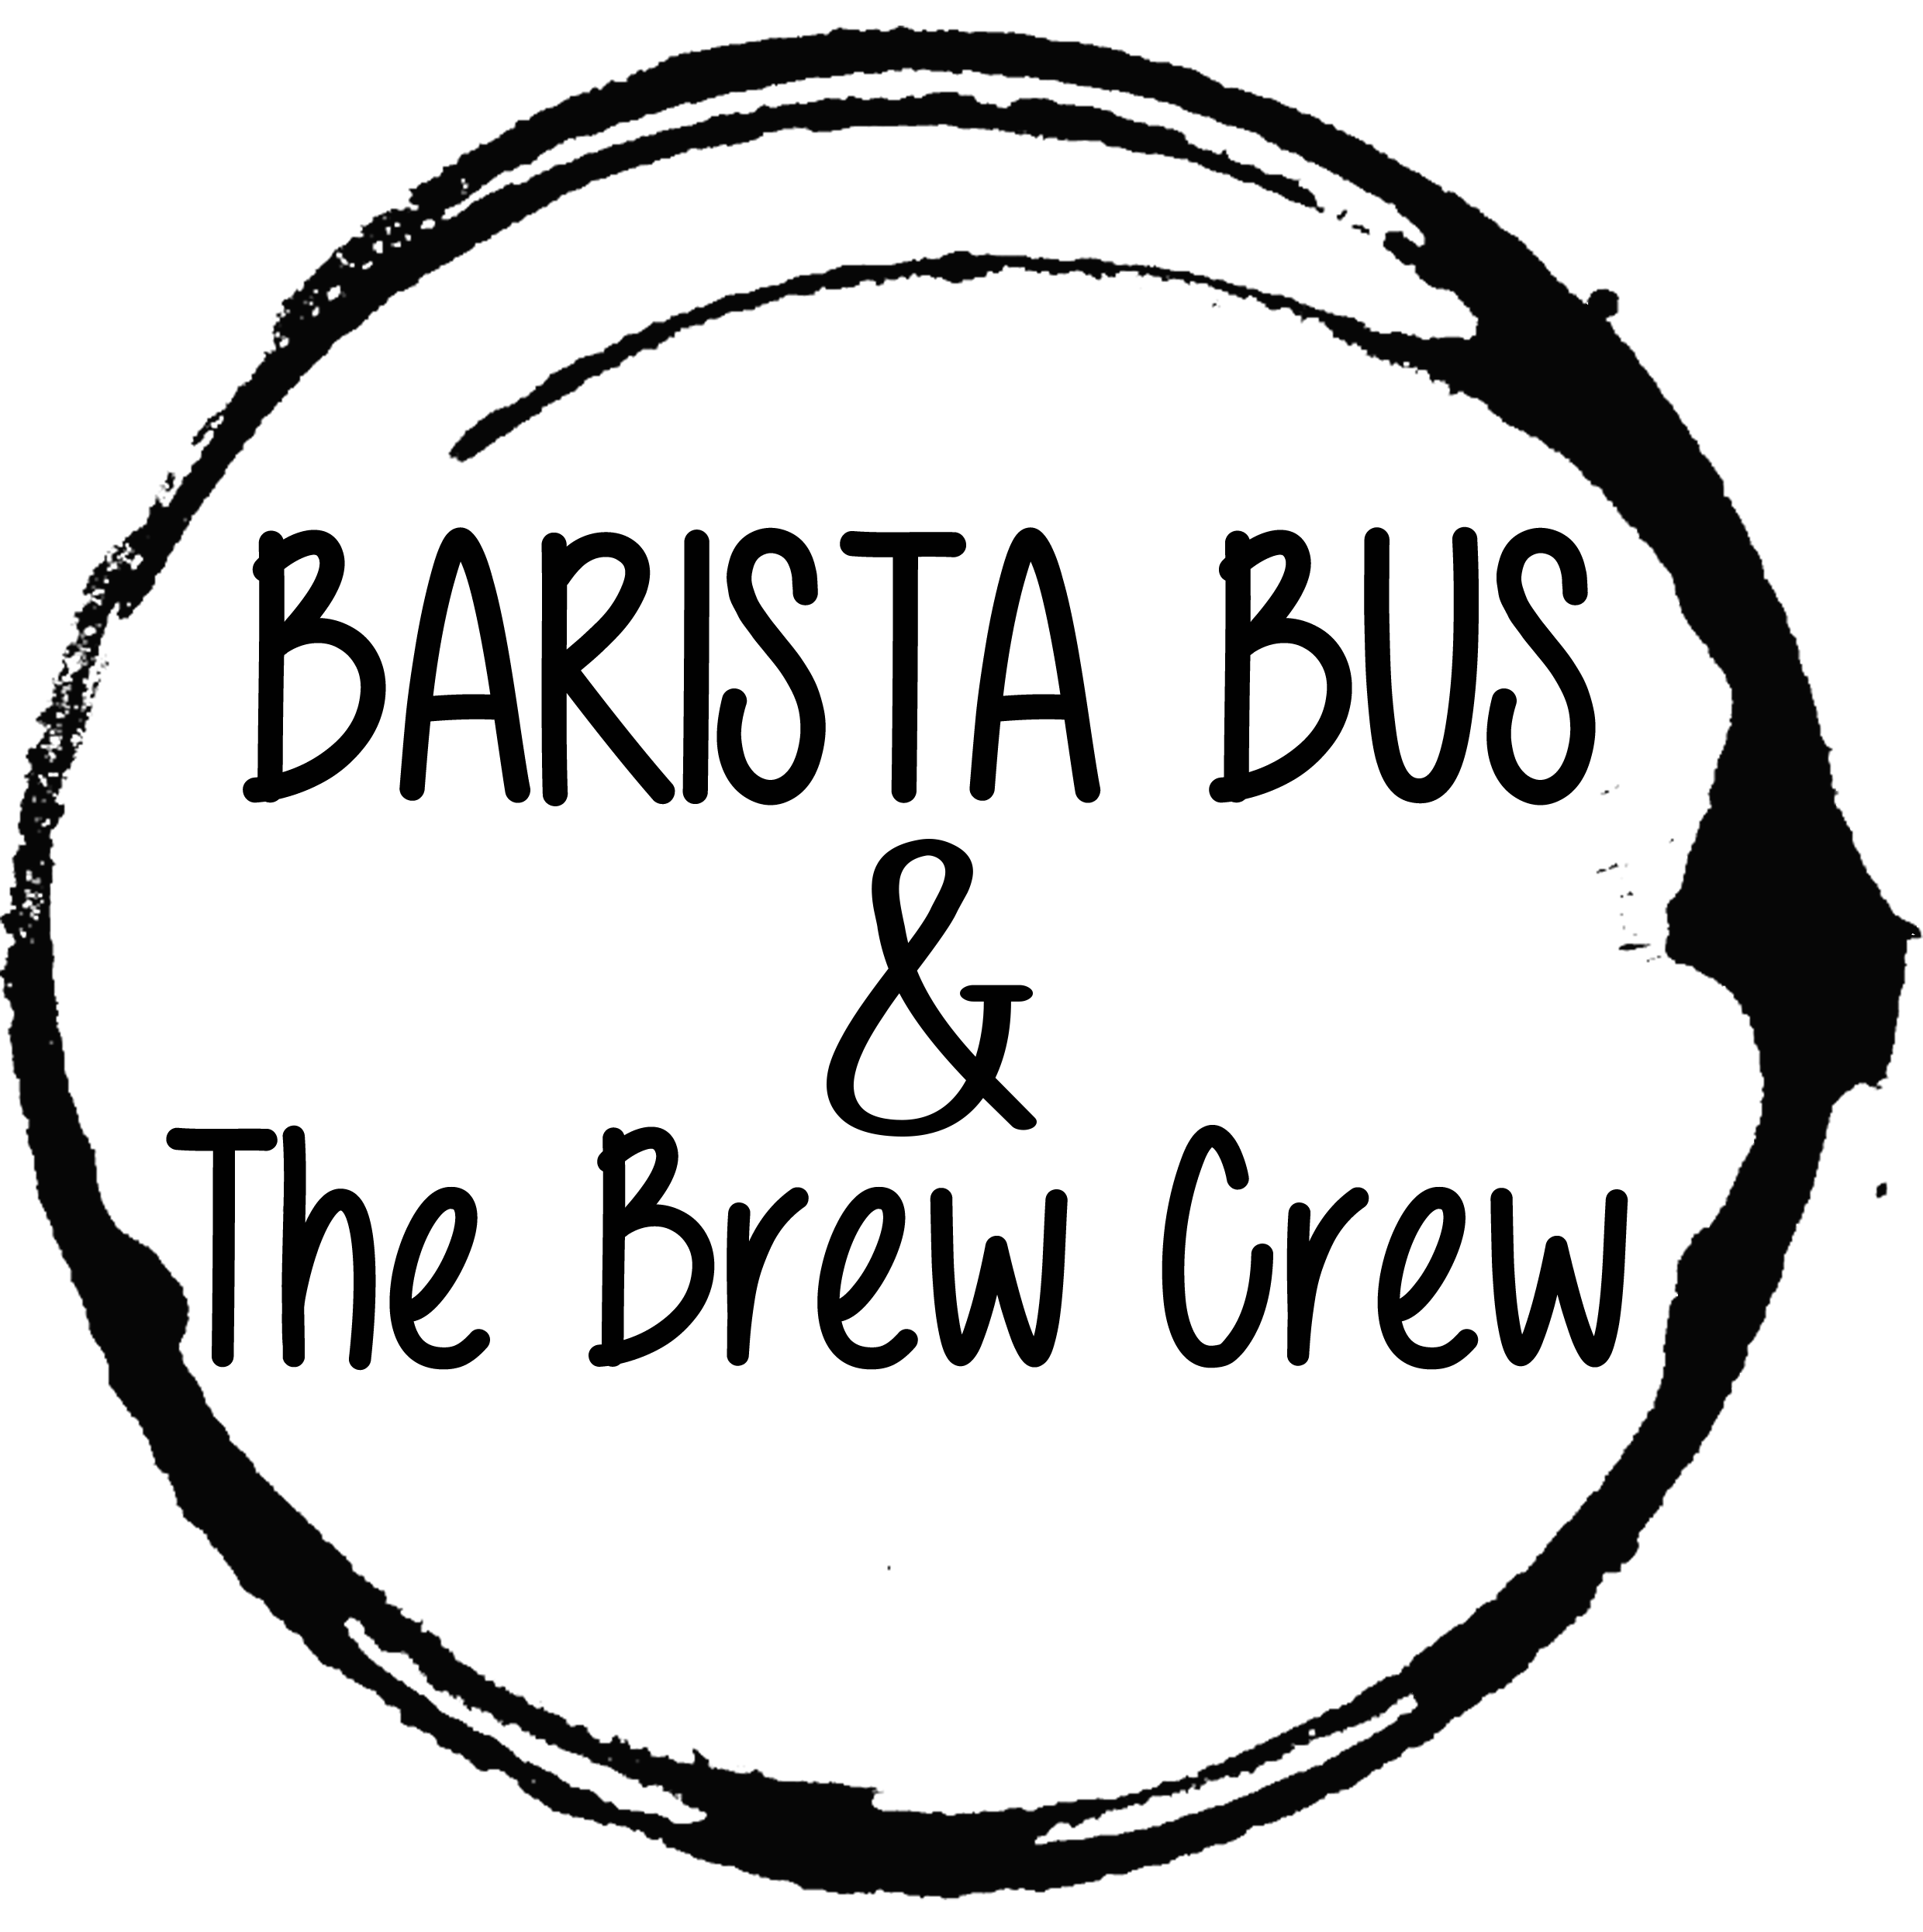 Barista Bus & the Brew Crew